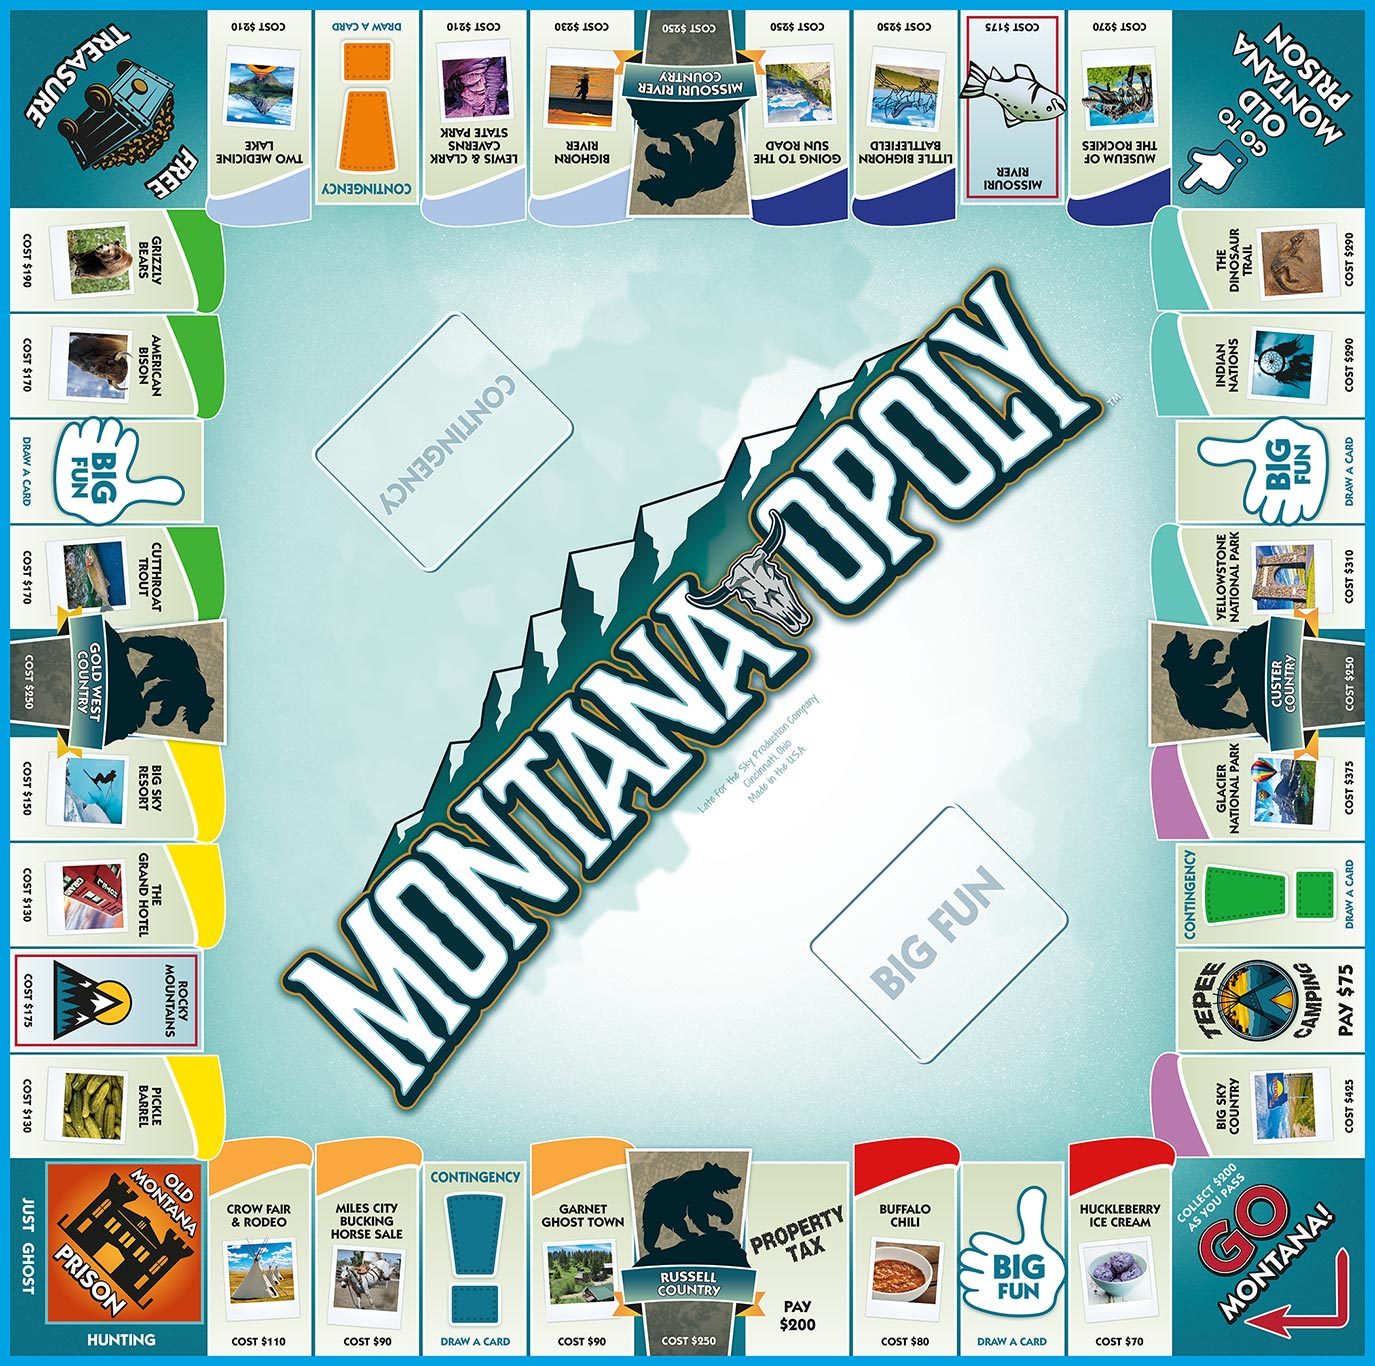 MONTANA-OPOLY Board Game